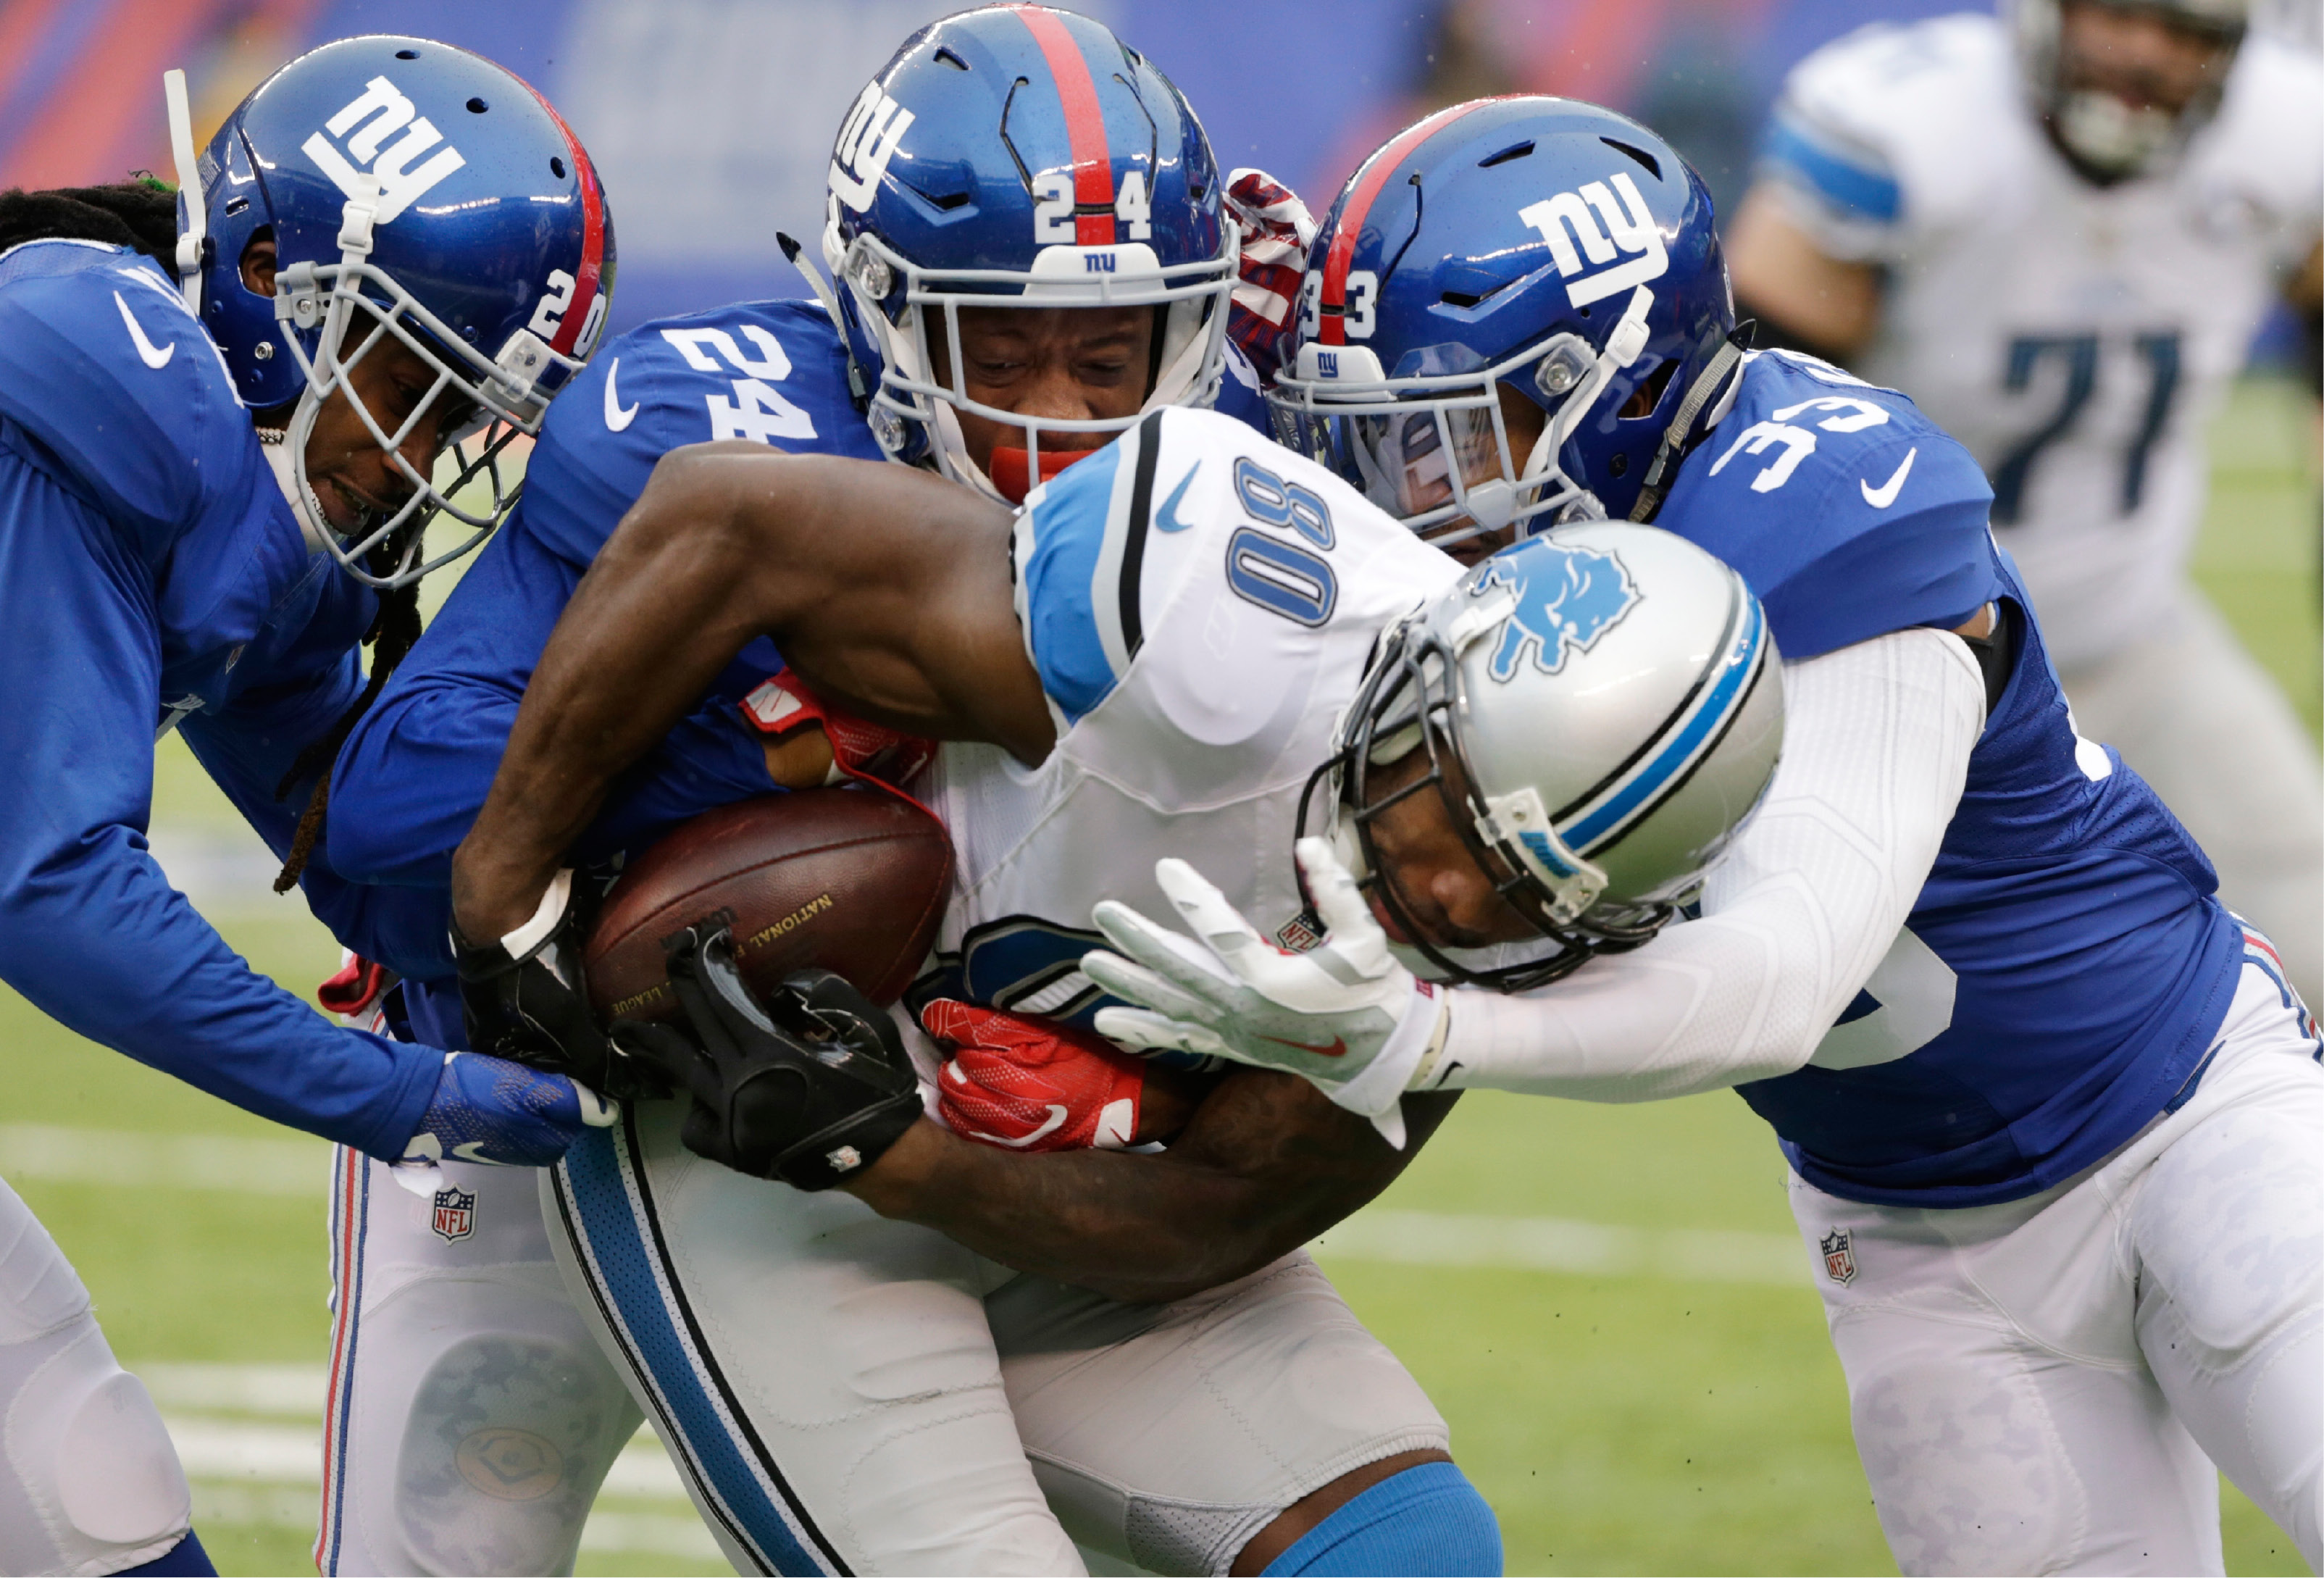 Lions wide receiver Anquan Boldin (80) is tackled by the Giants' Janoris Jenkins, left, Eli Apple (24) and Andrew Adams (33) during the first half of Sunday's game in East Rutherford, N.J. | Associated Press